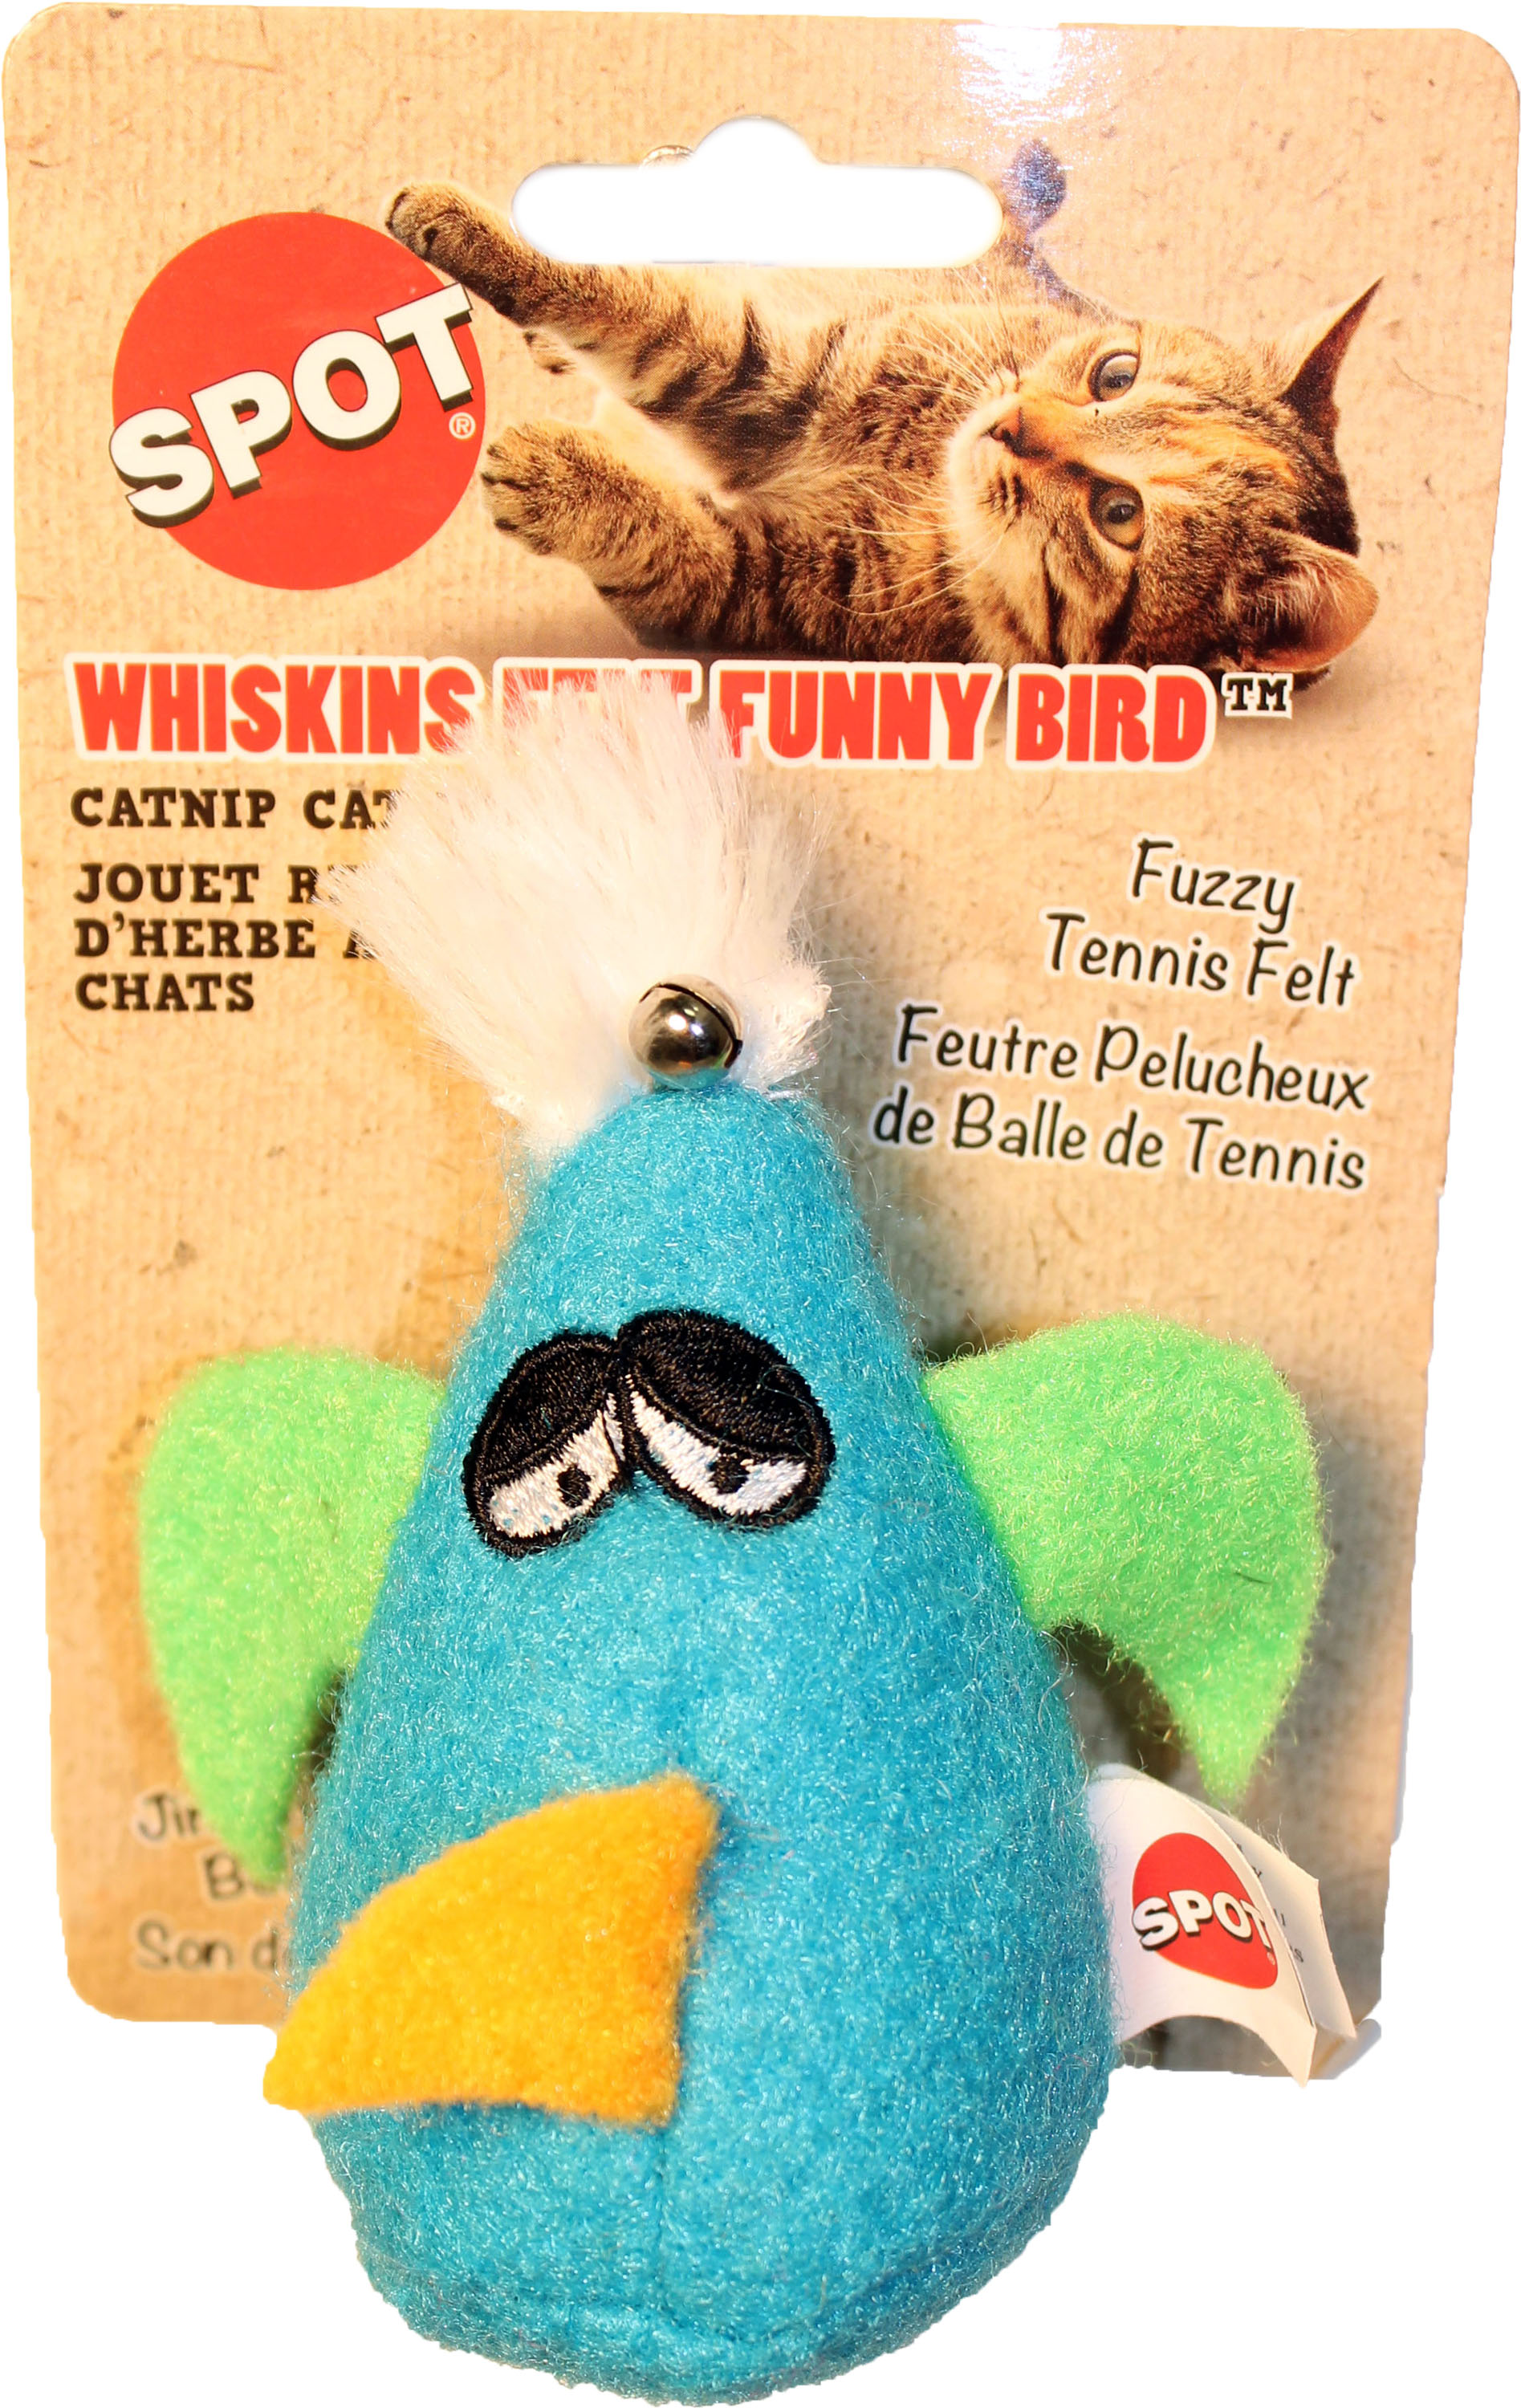 Ethical Pet Spot Whiskins Felt Funnybird Catnip Cat Toy, Color Varies